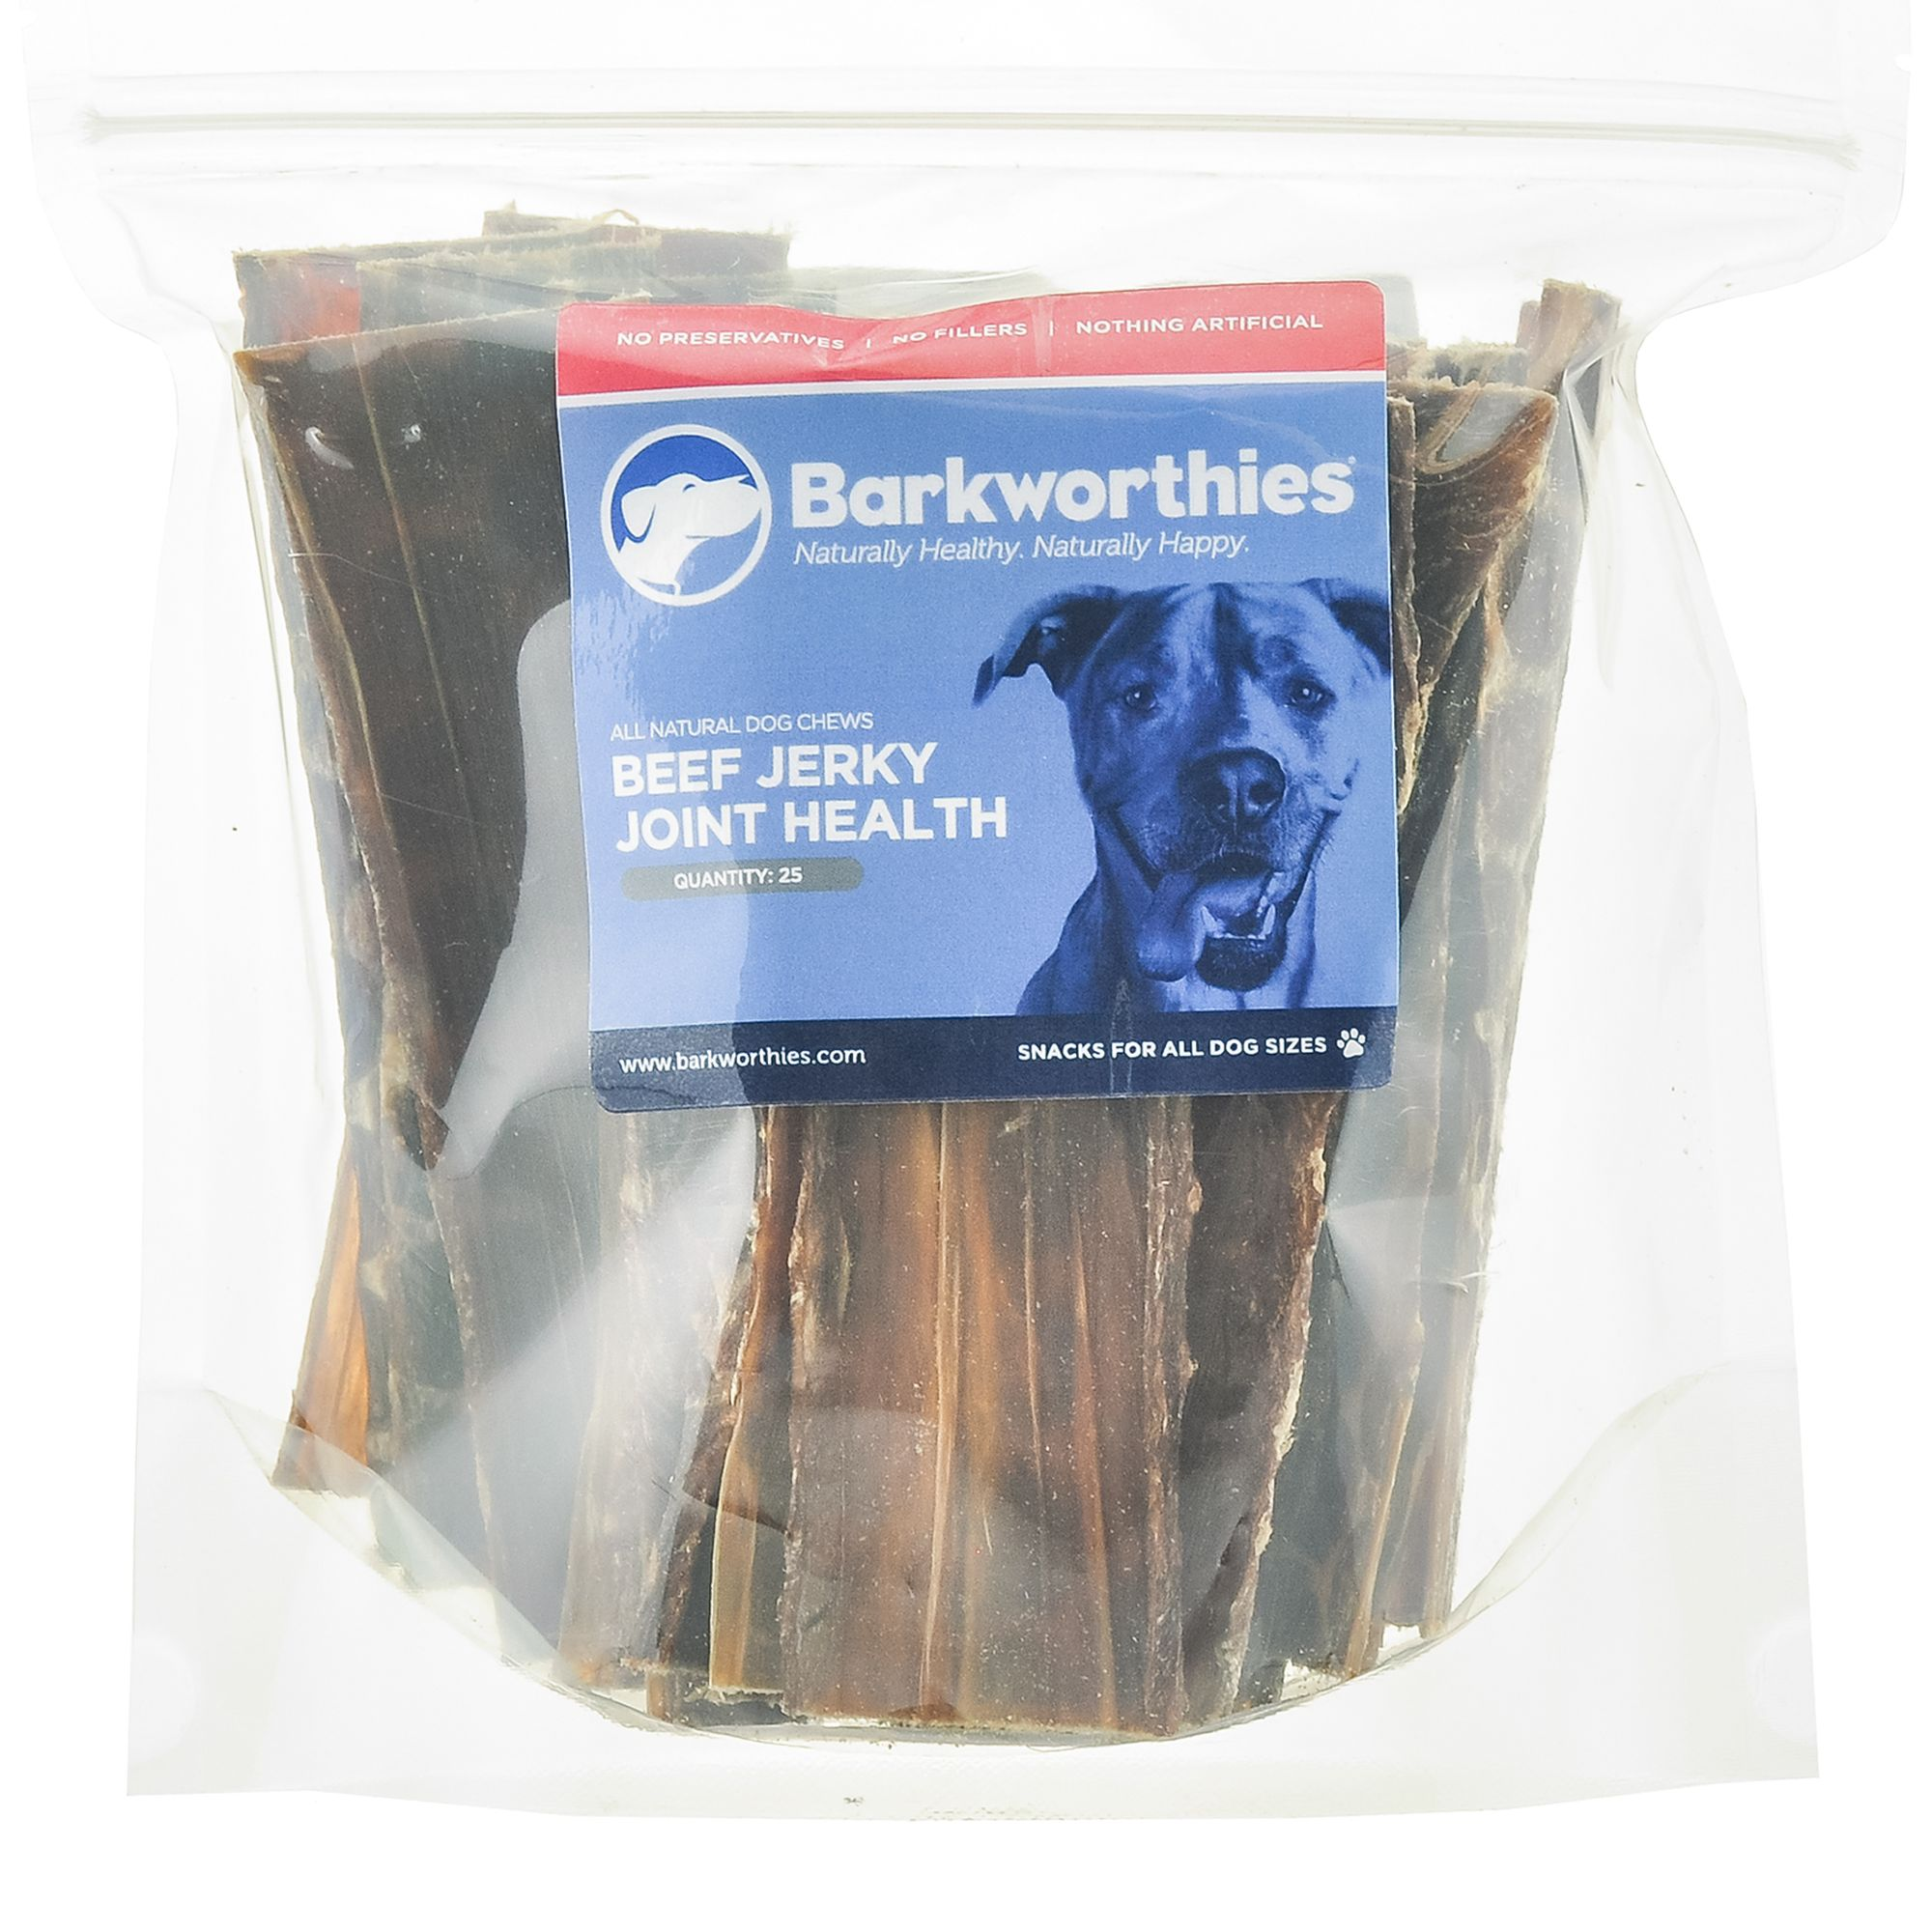 Barkworthies Beef Jerky Dog Chew Natural Joint Health Size 25 Count